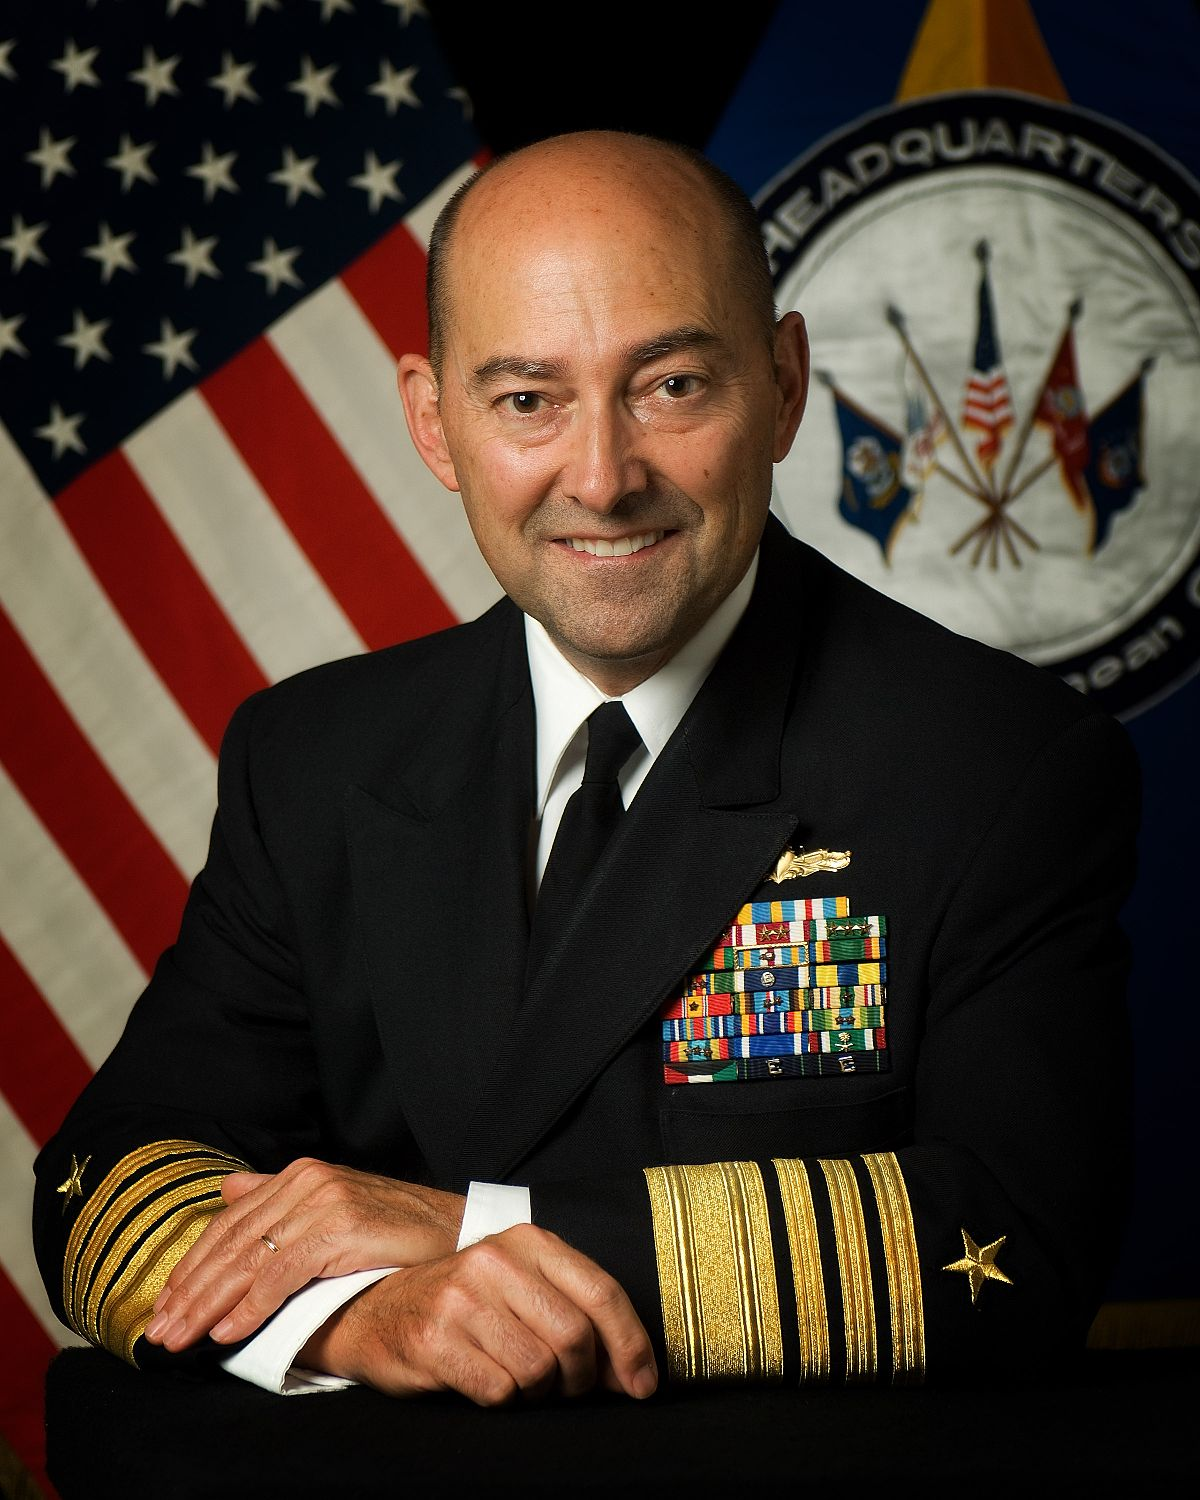 James George Stavridis